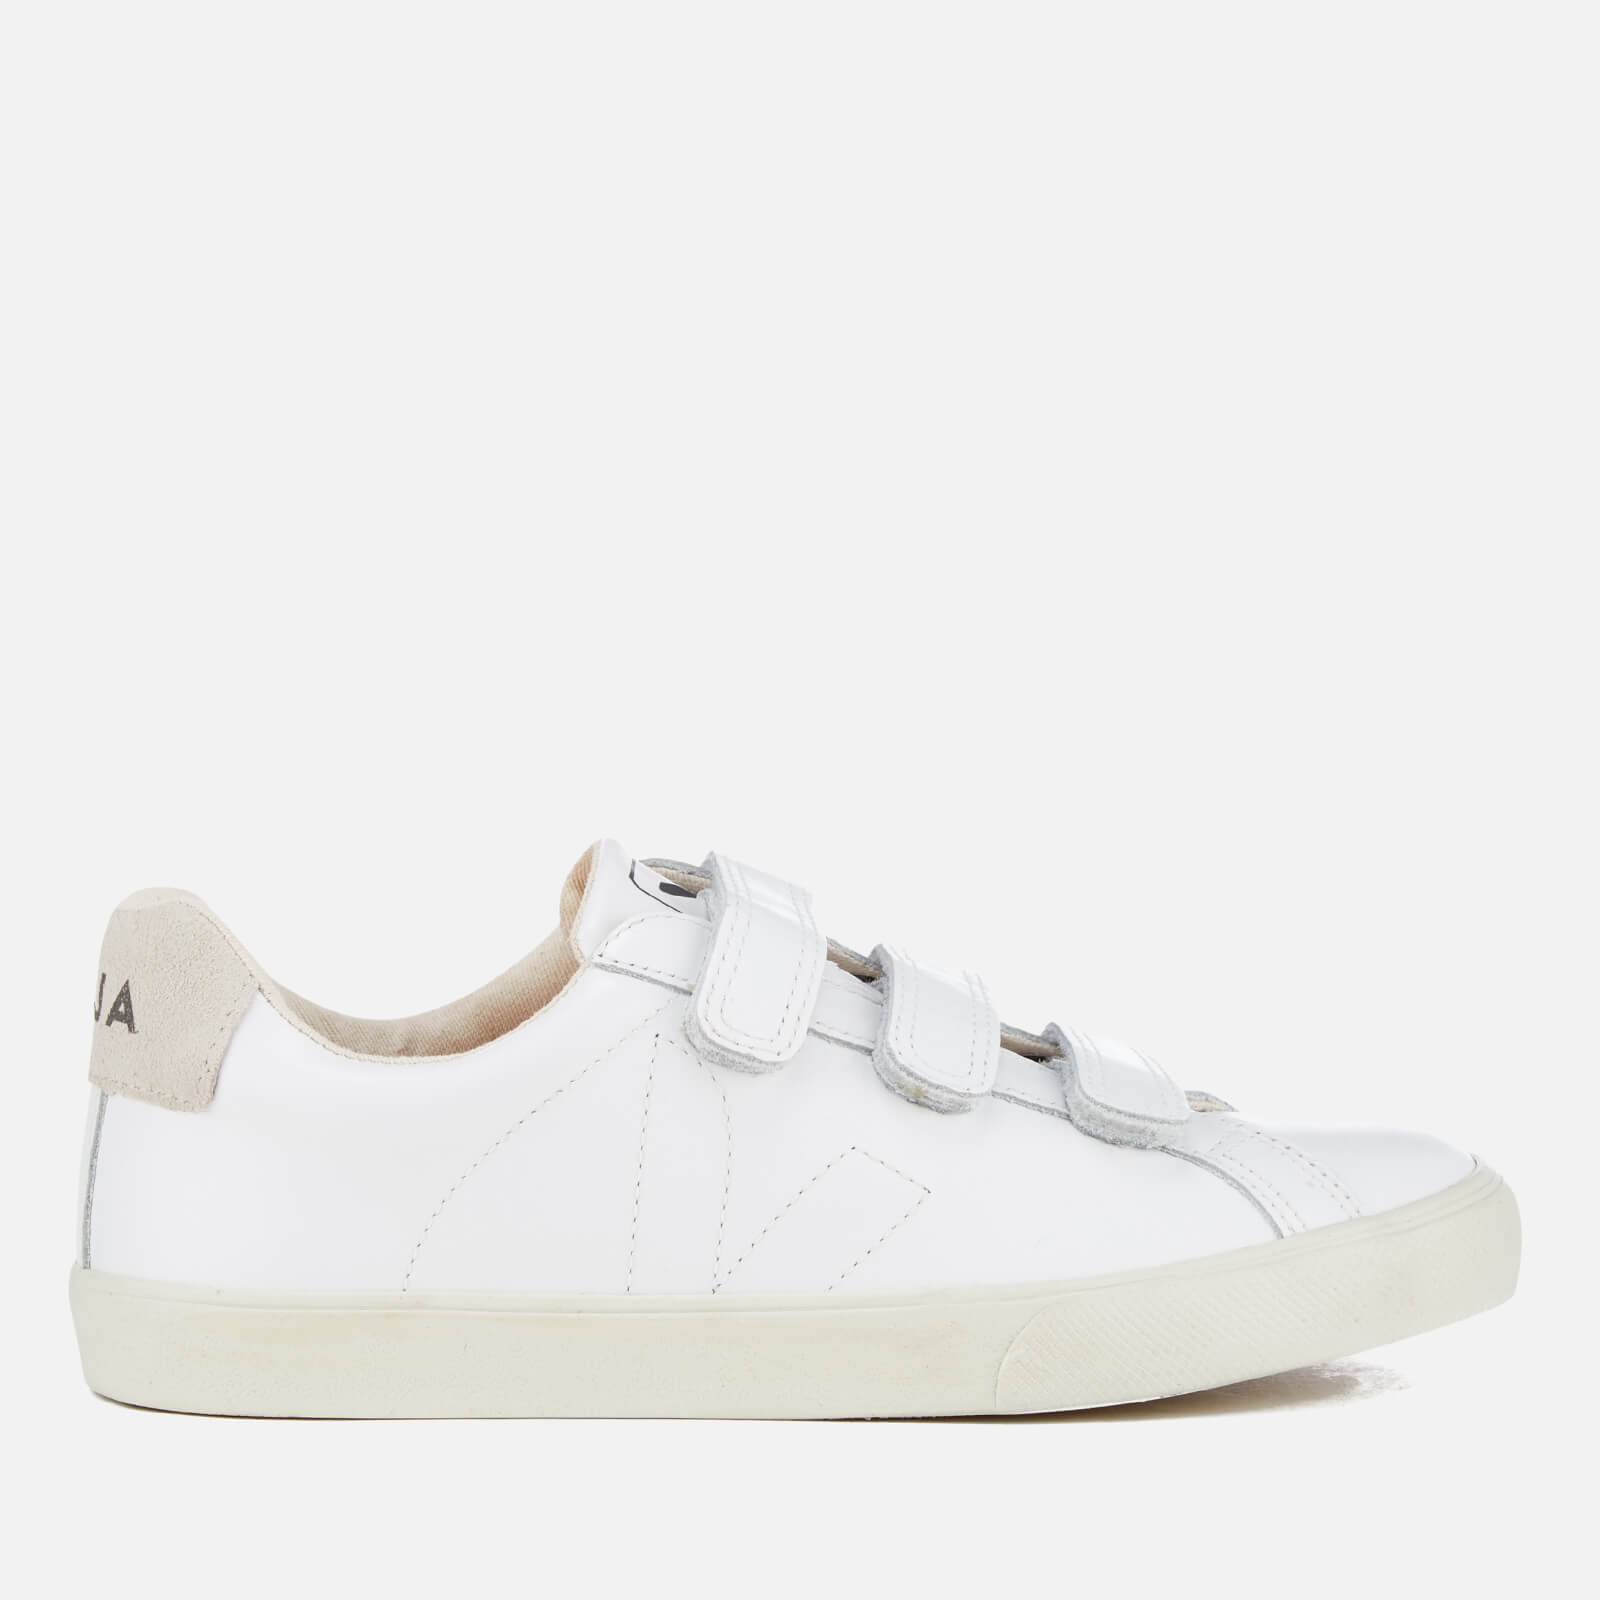 0572b7ffbbb9b1 Veja Women's 3-Lock Leather Trainers - Extra White | FREE UK Delivery |  Allsole